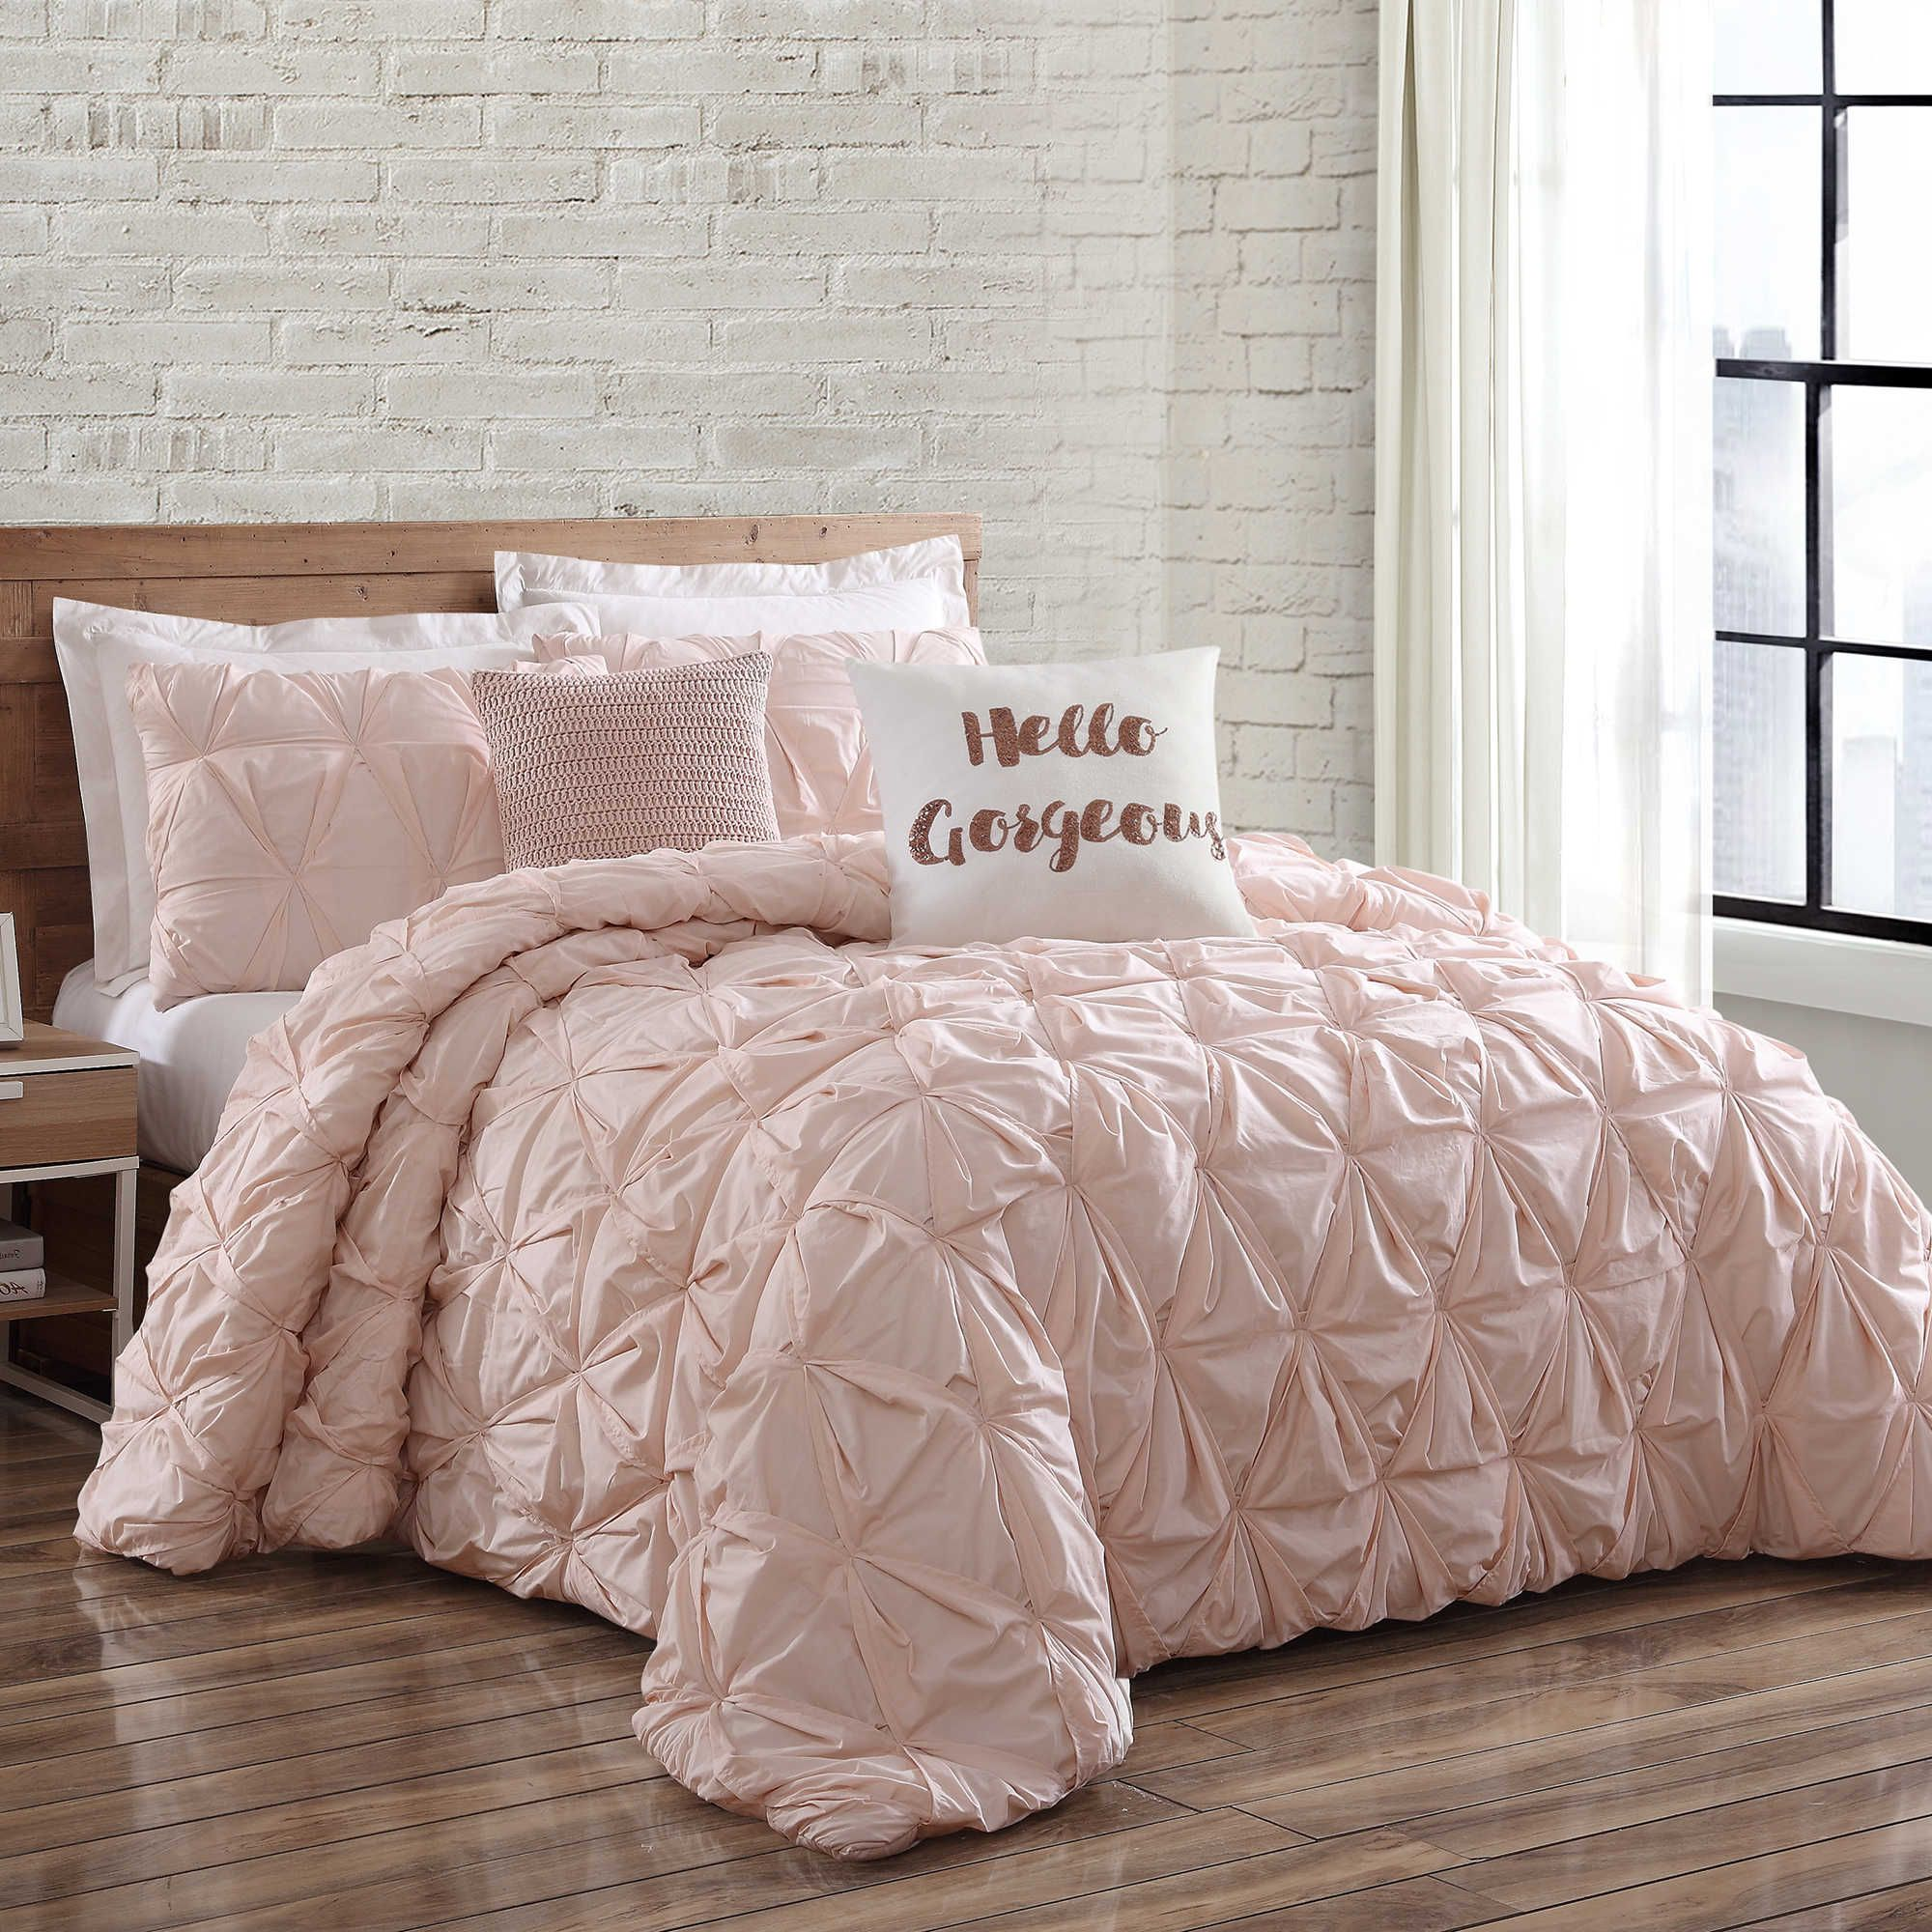 delivery in zoom n drapes next dreams free blush to img htm duvet cover indra set p hover